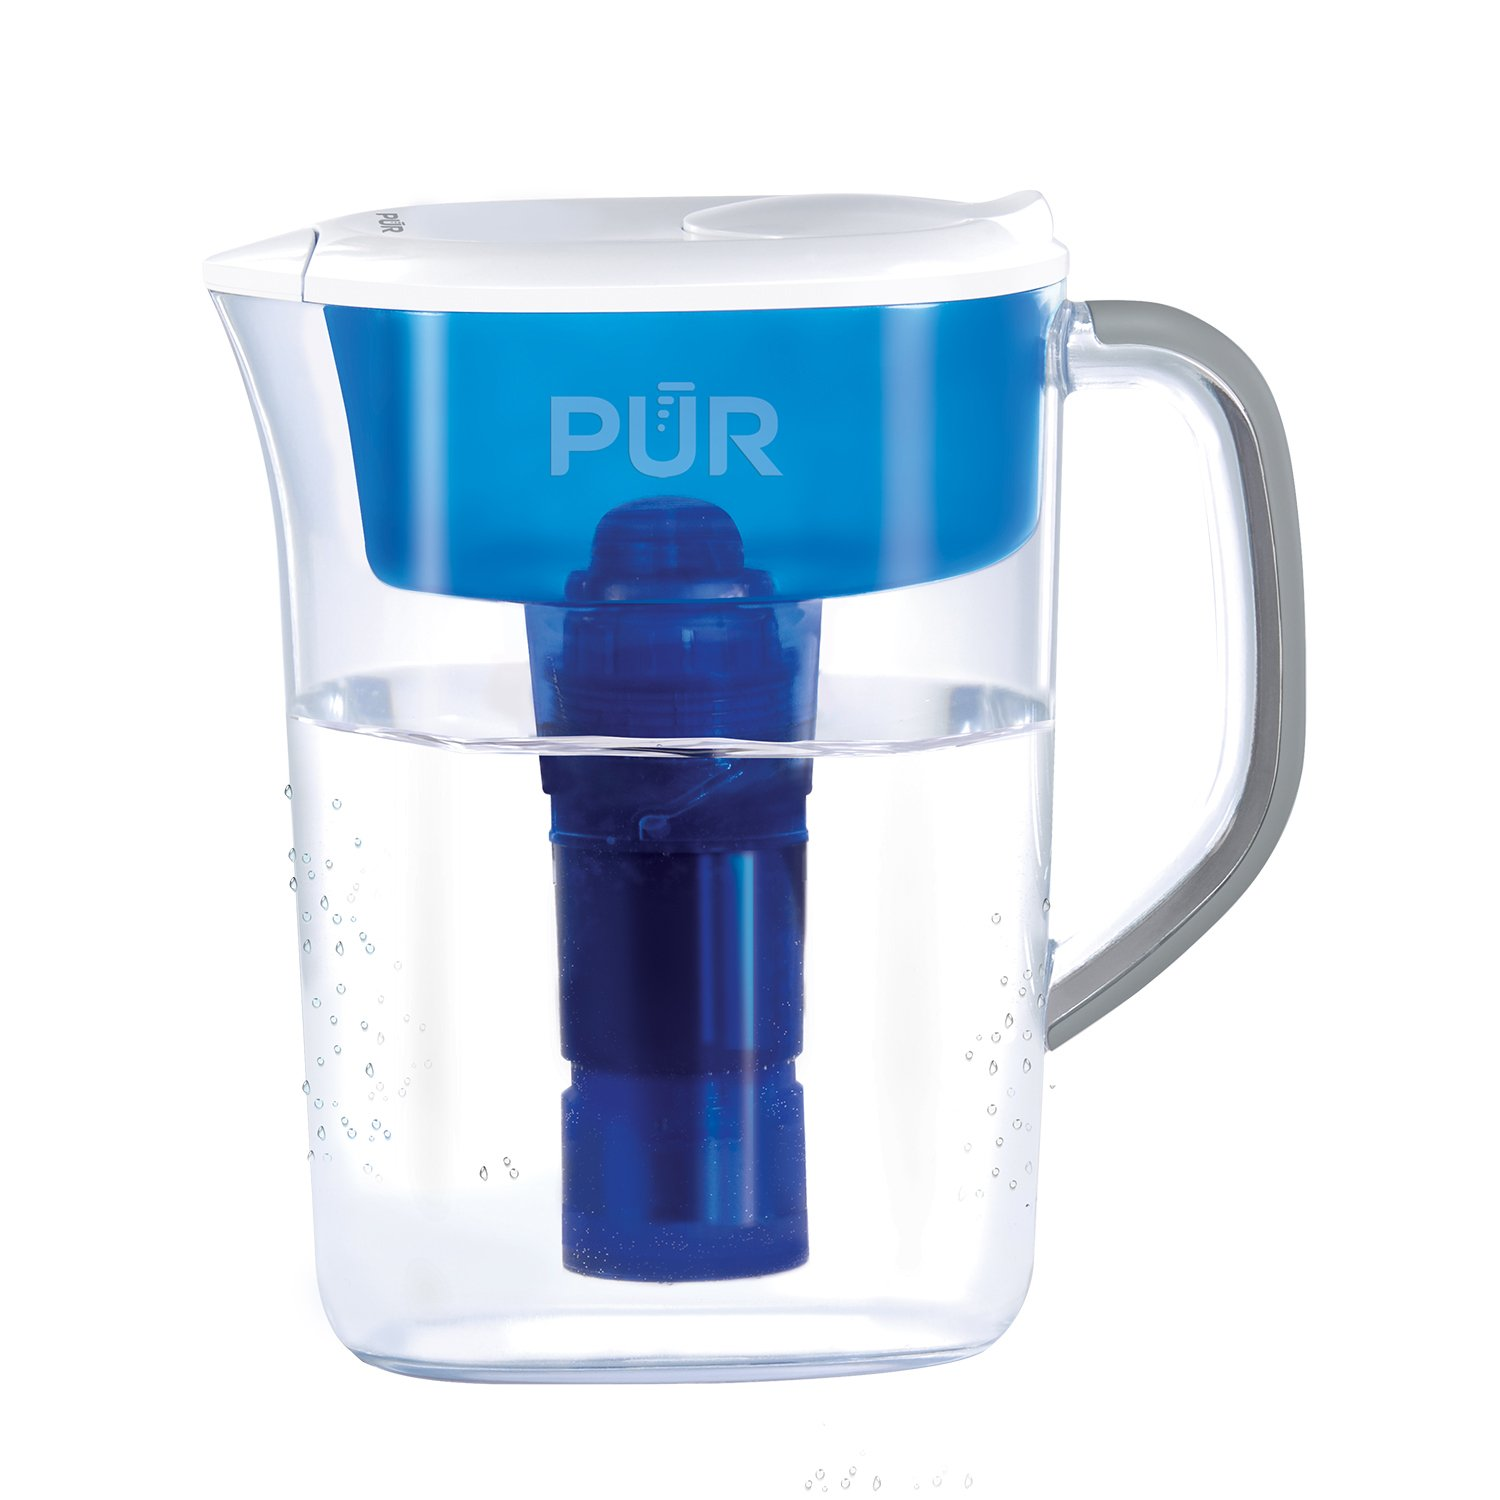 PUR 7 Cup Basic Water Filtration Pitcher, Filter Helps Reduce Chlorine Taste and Odor, Filter Provides Up To 40 Gallons or About 2 Months of Filtered Water